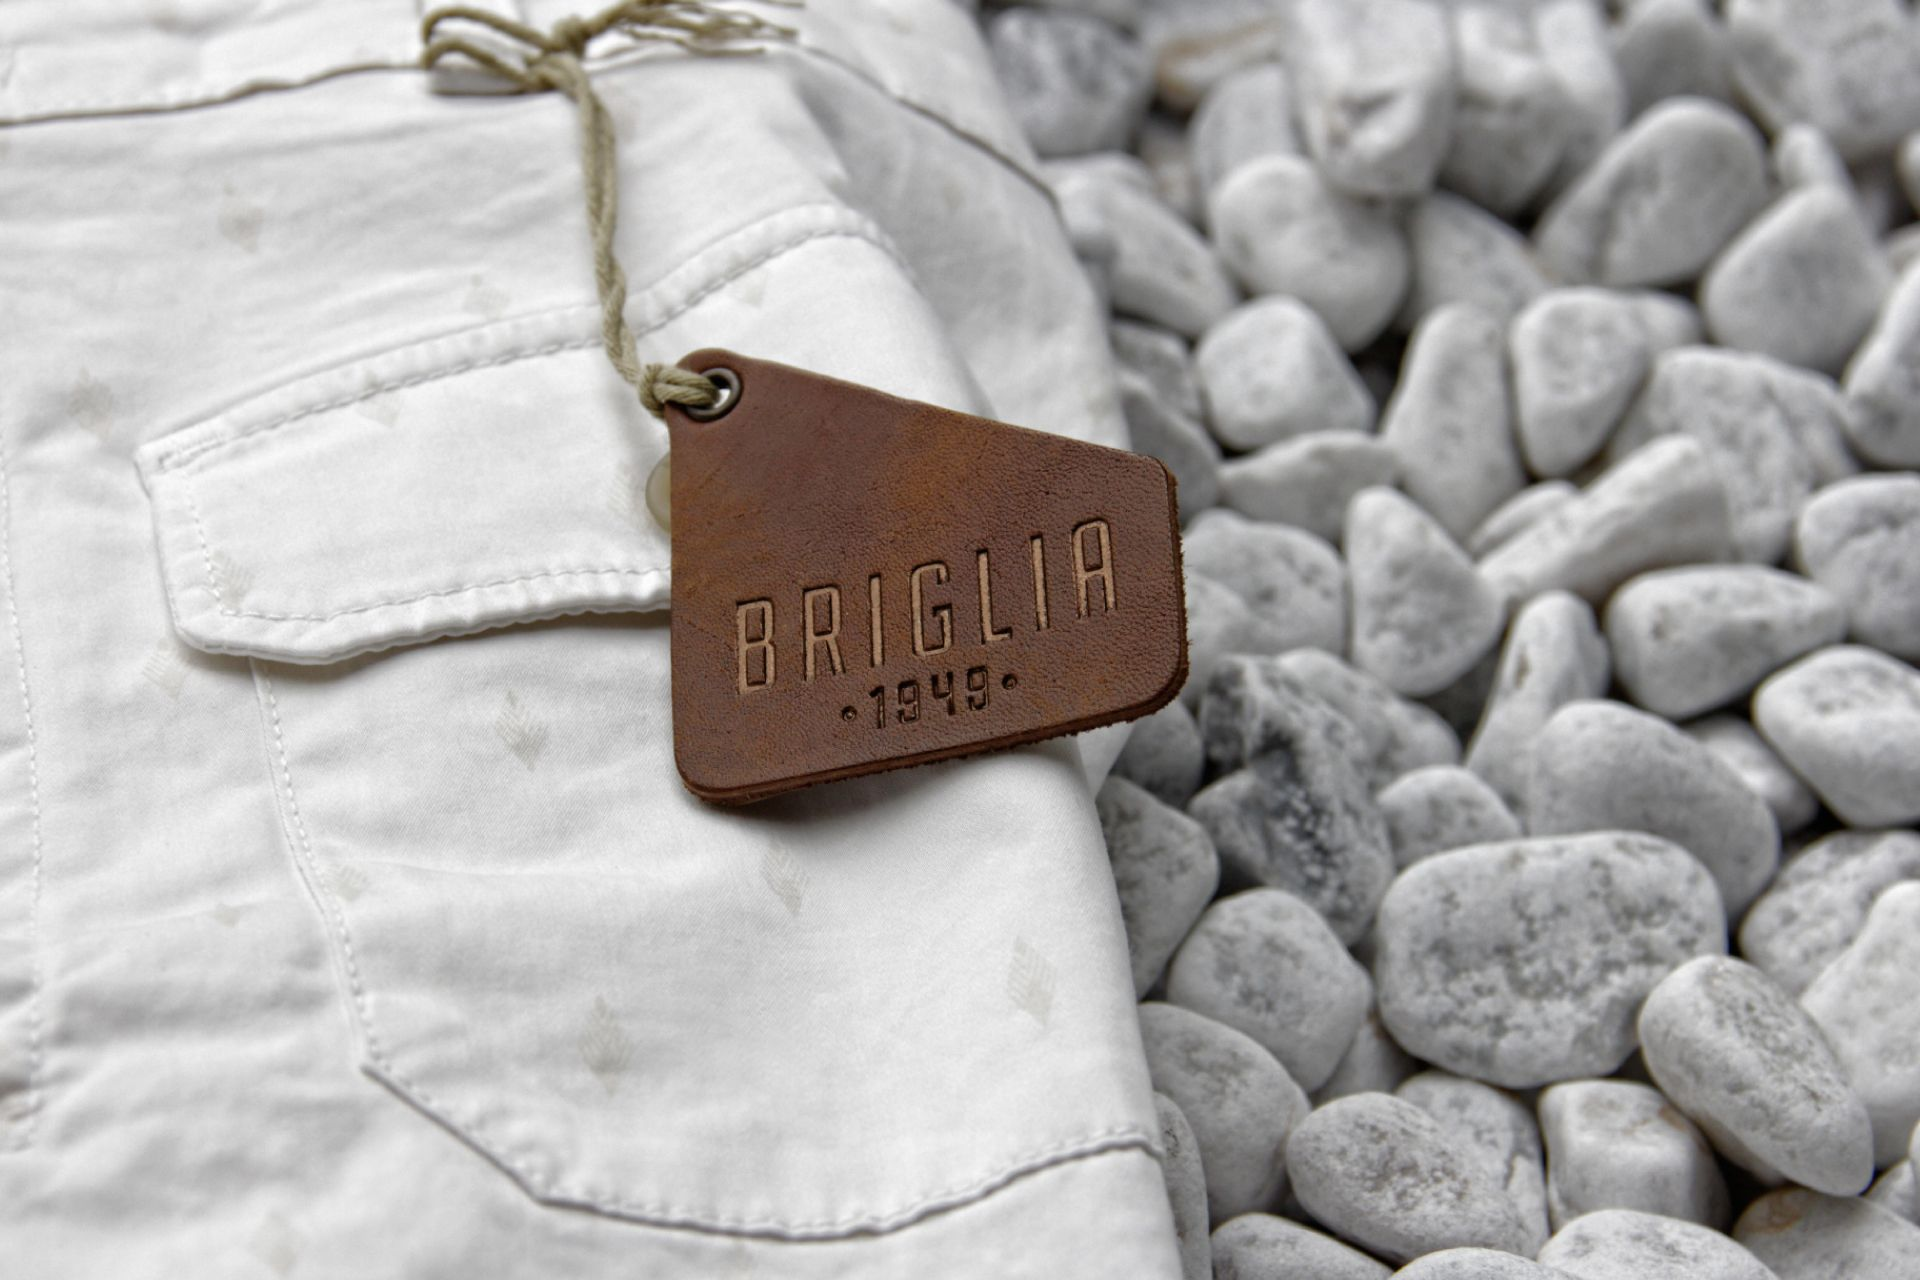 """""""No #Detail in too small. It's all about the Details""""  Briglia 1949 - The Gentleman's Choice."""